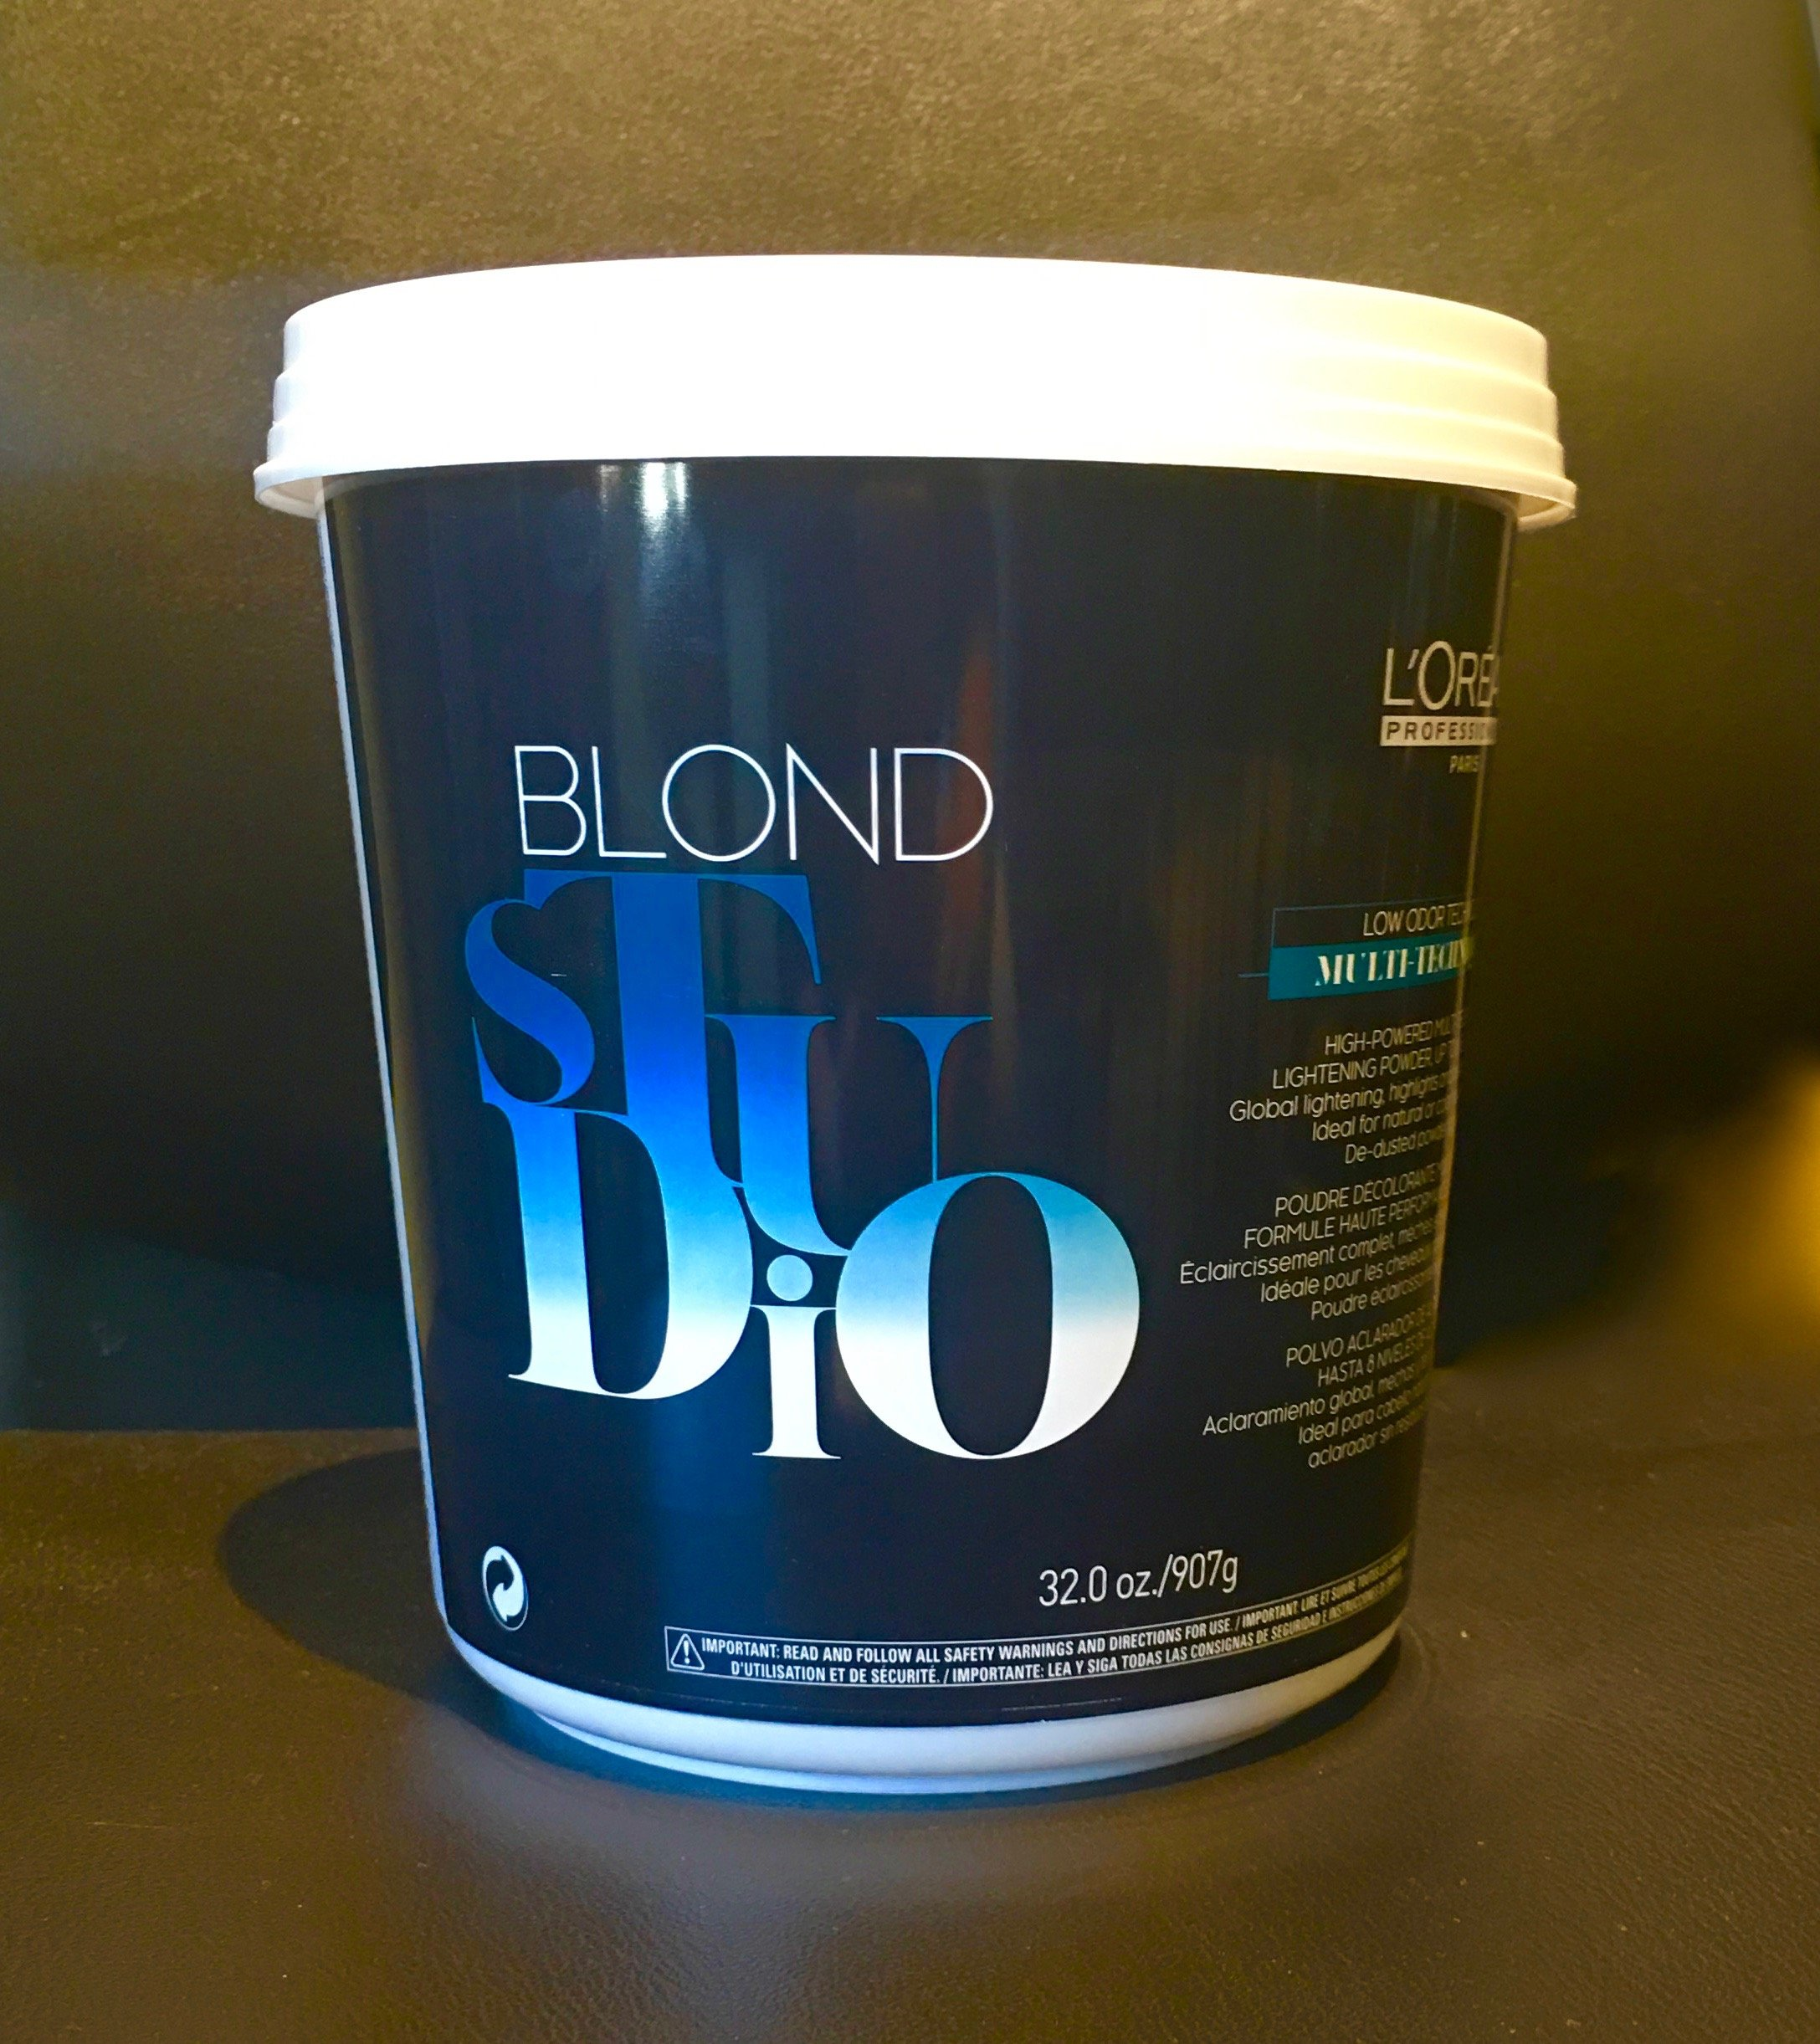 L'Oreal Professional Blond Studio Multi-Techniques Powder, 32 oz by Blond studio (Image #1)